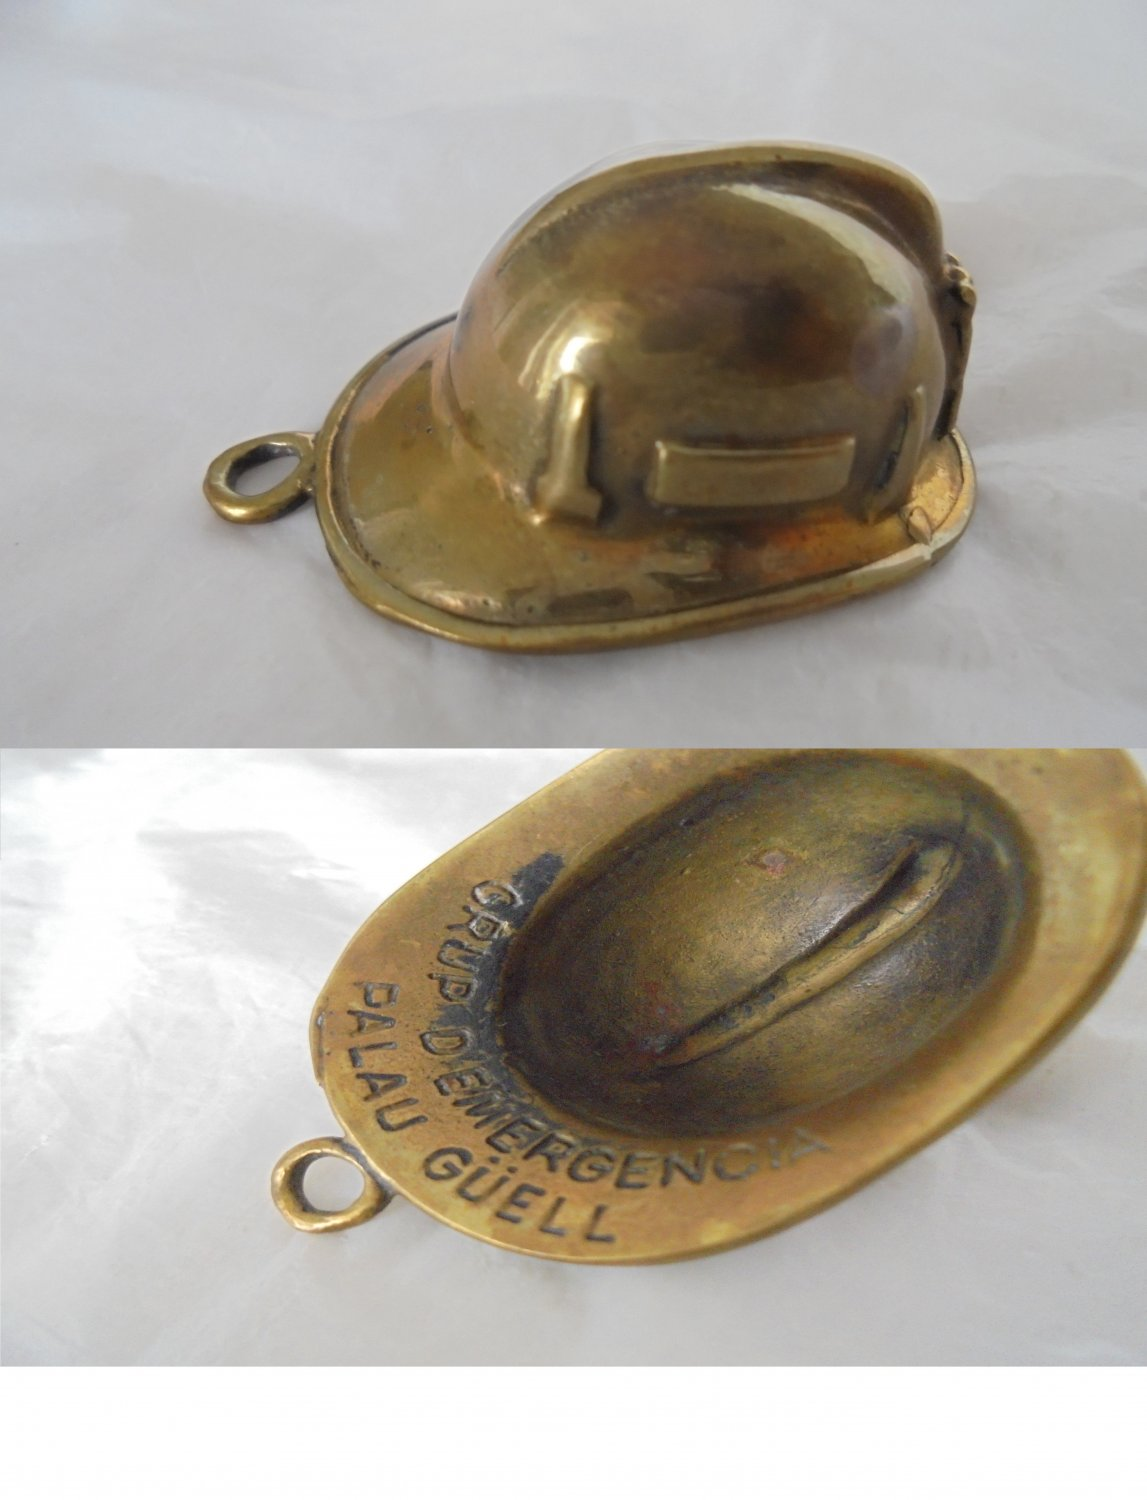 BOMBEROS SPAIN Palau Guell firefighters helmet pendent charm in bronze 1960s Original